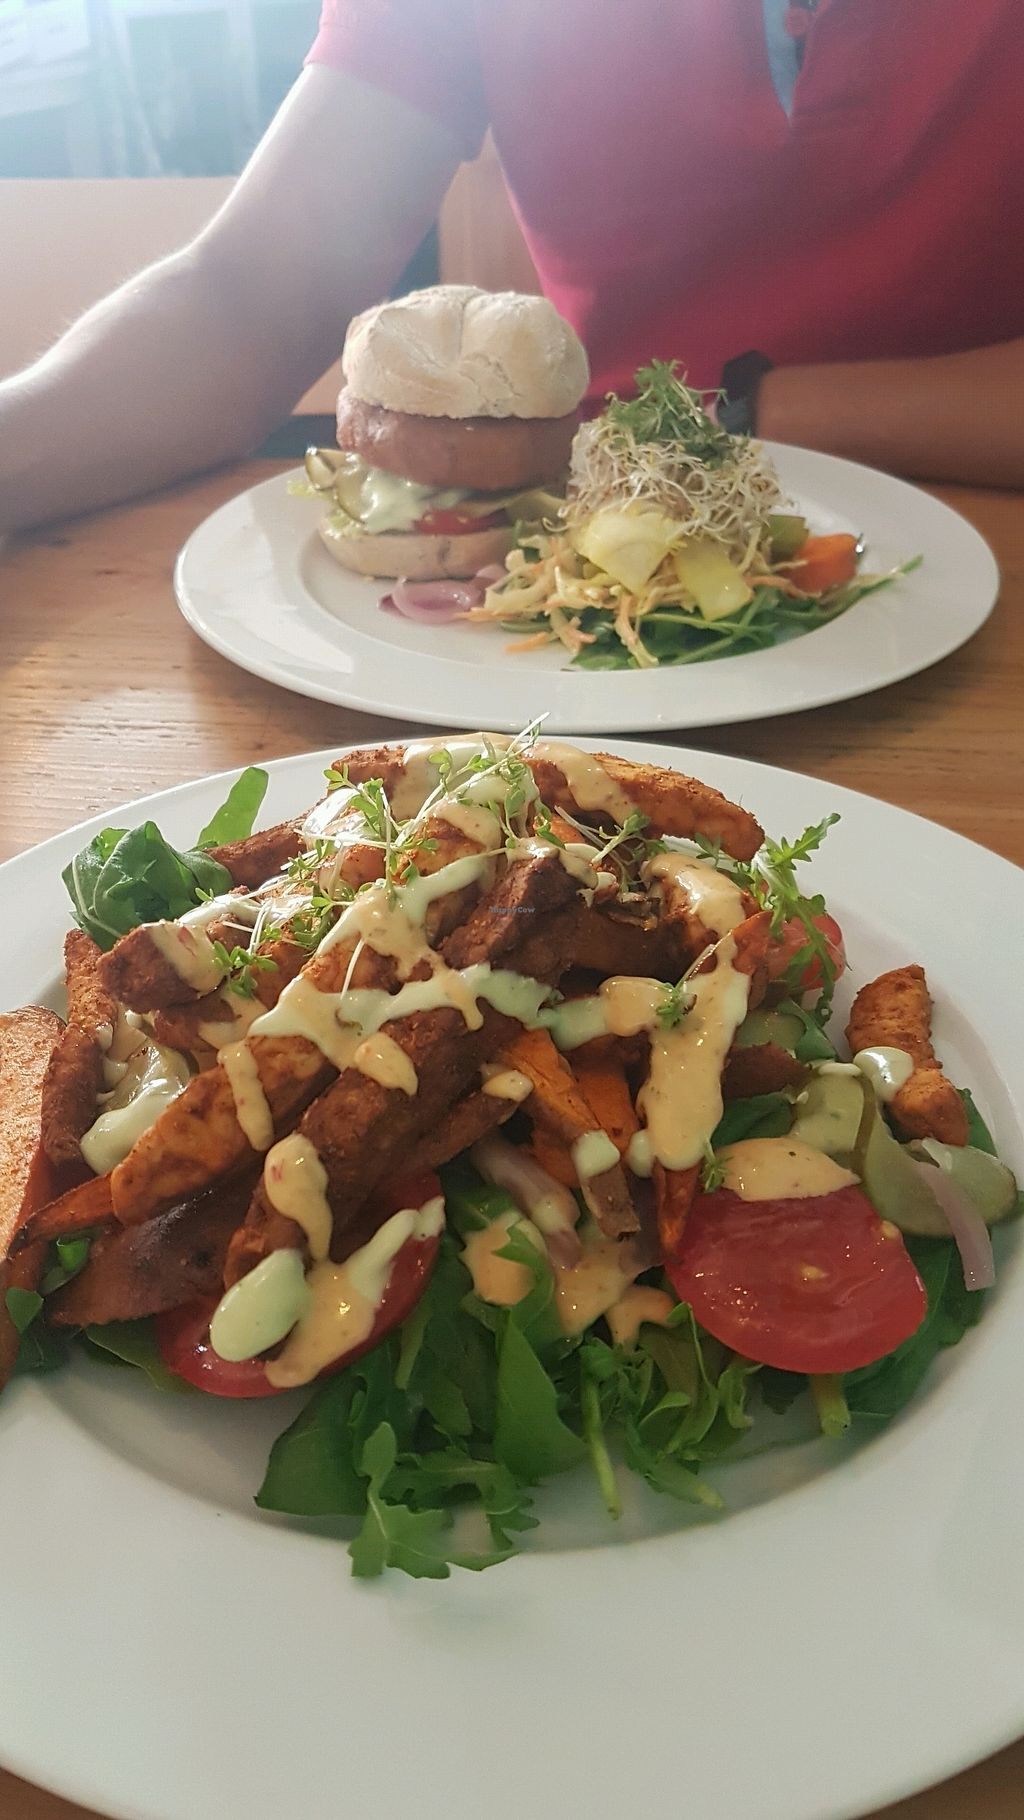 """Photo of GYS  by <a href=""""/members/profile/VeganCrush"""">VeganCrush</a> <br/>veggie burger and tempeh french fries sweet potato <br/> September 26, 2017  - <a href='/contact/abuse/image/53767/308615'>Report</a>"""